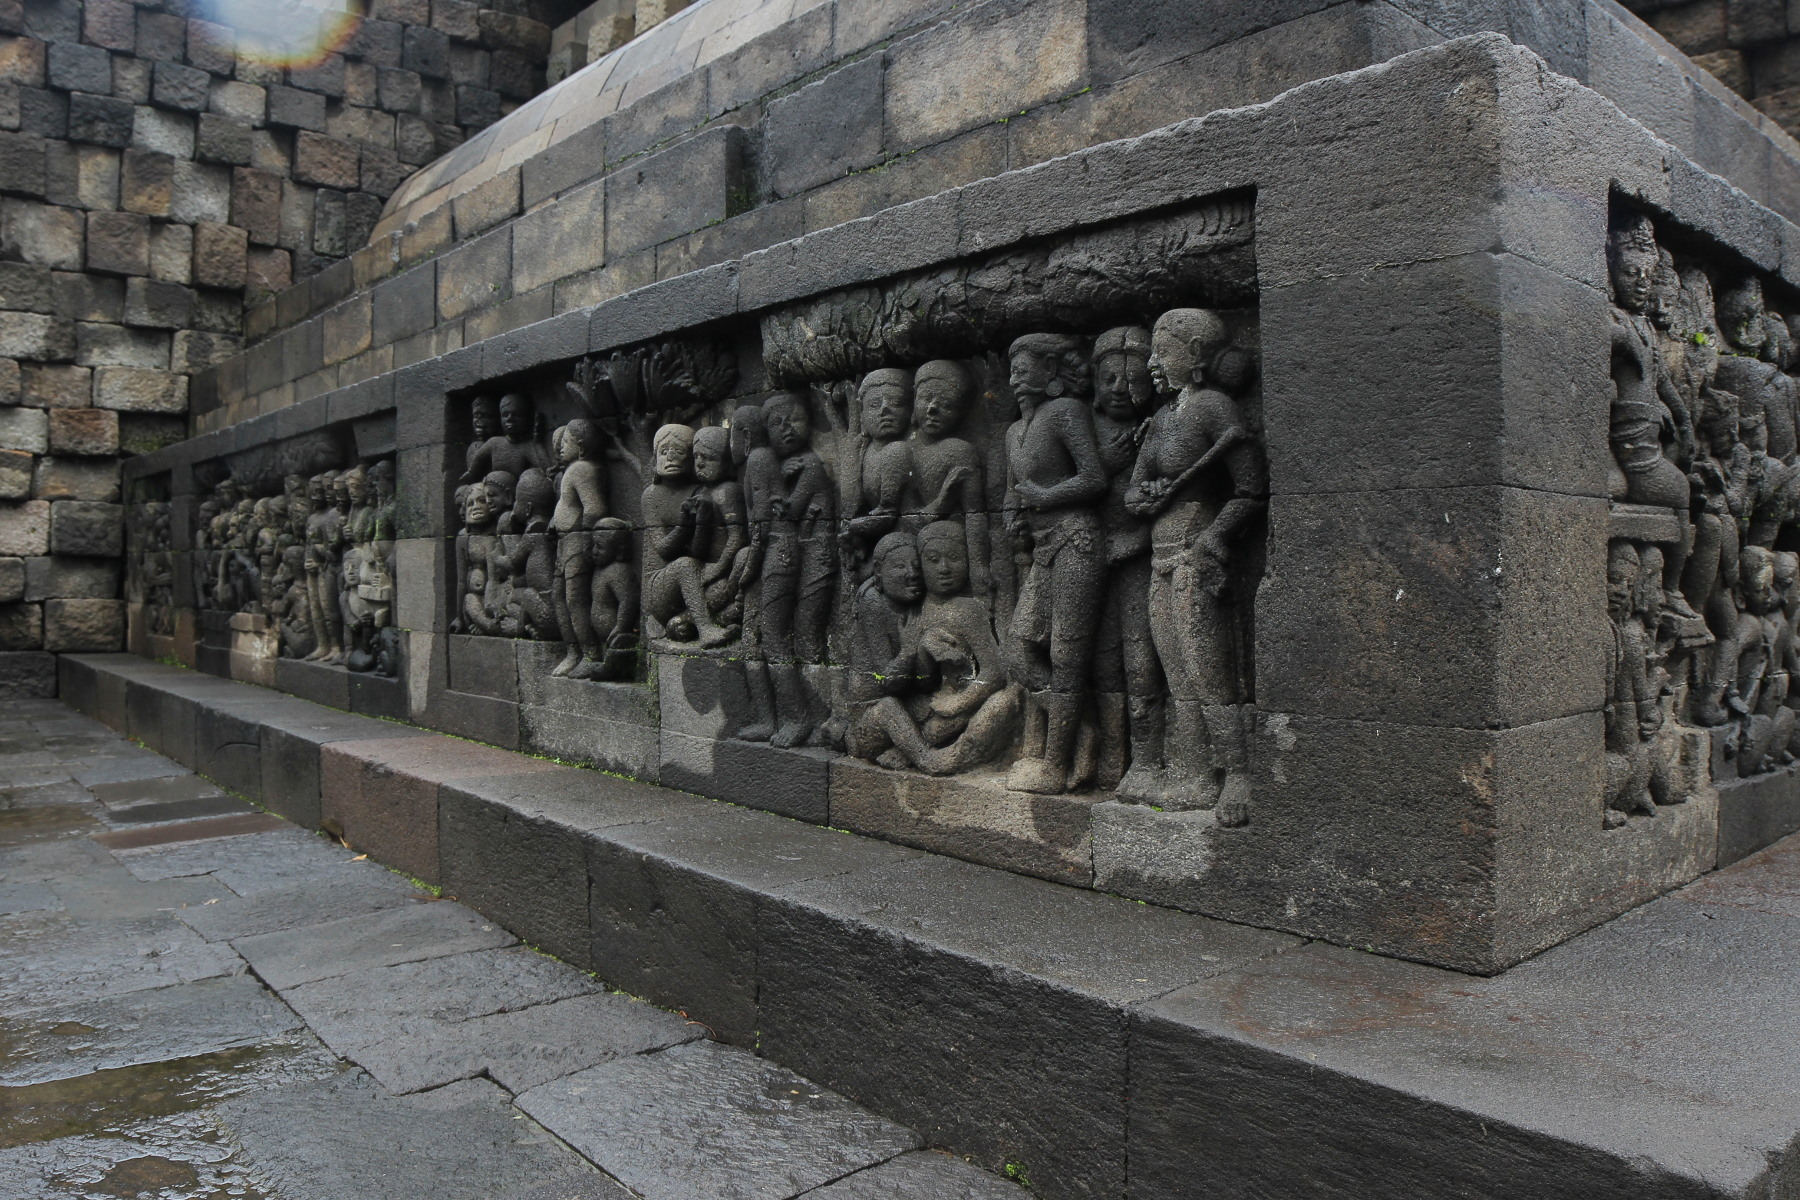 Sculpted wall